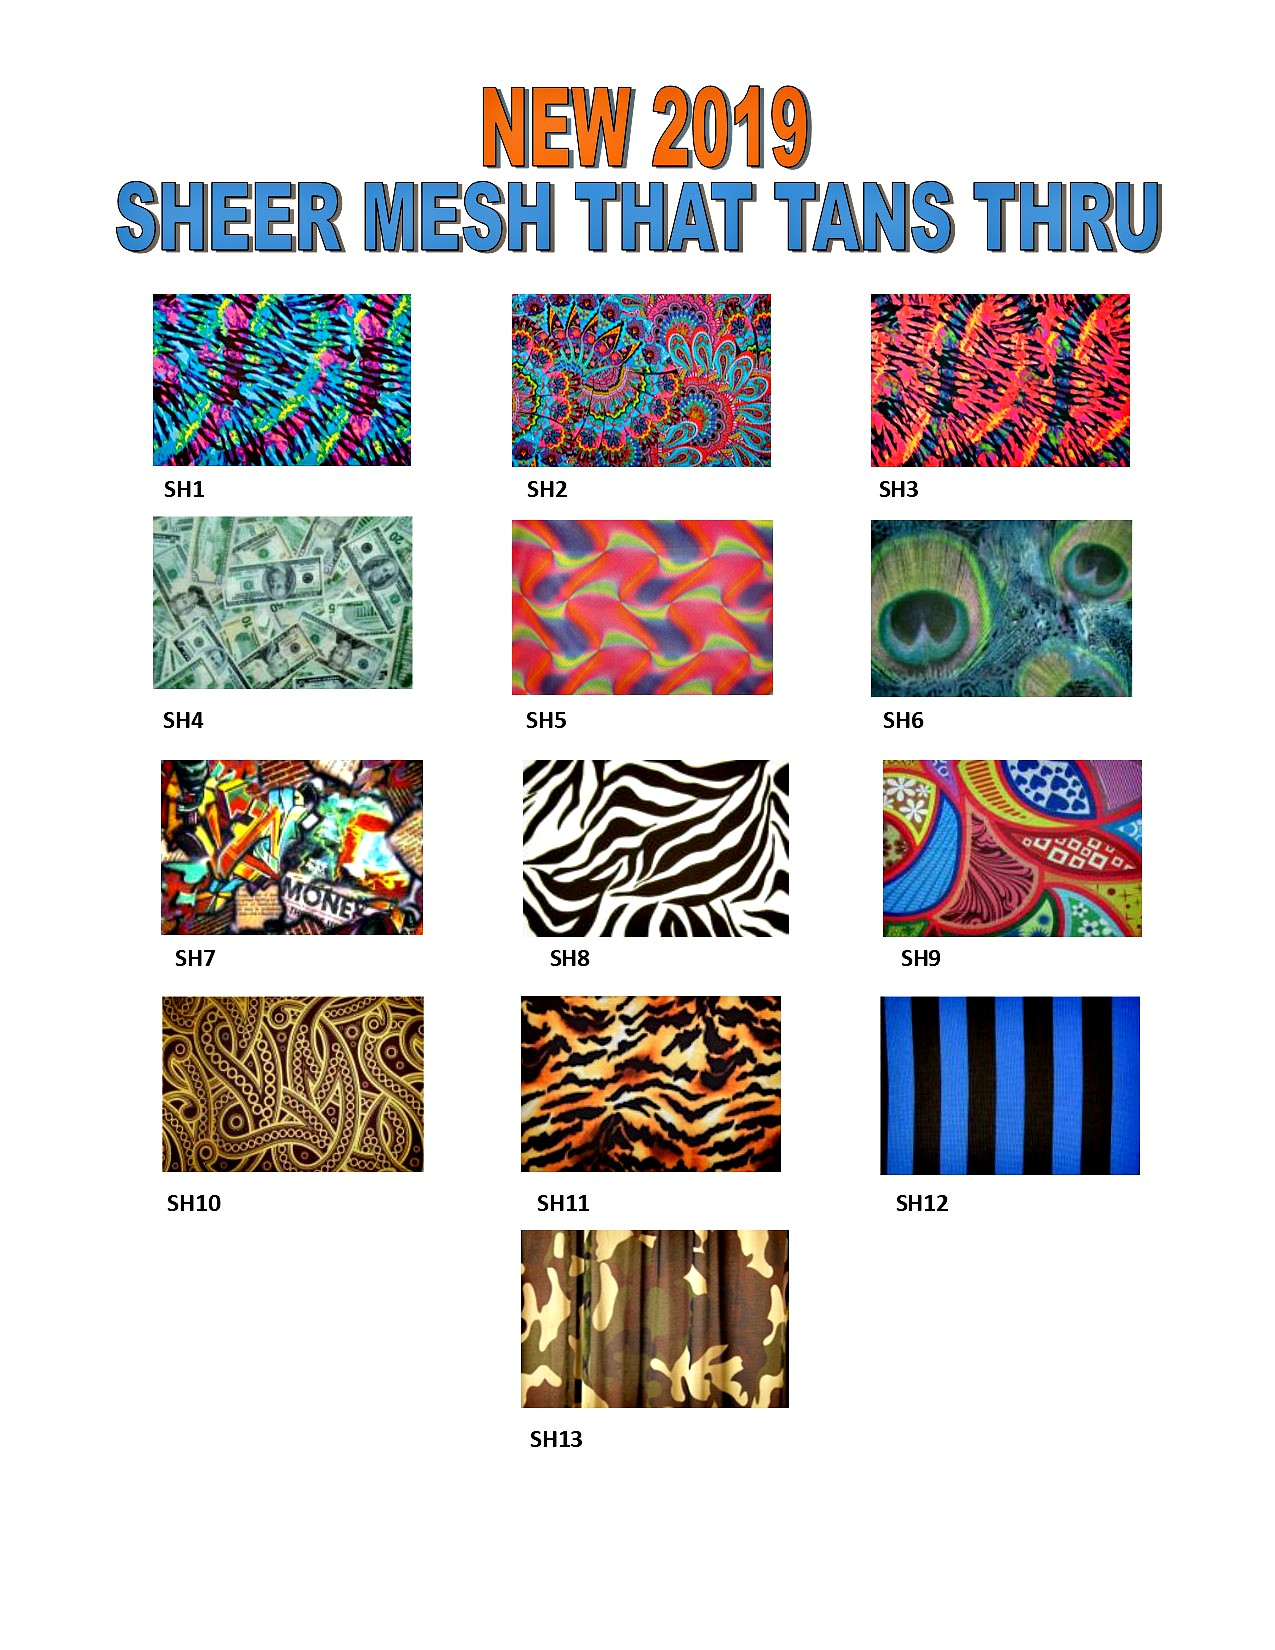 2019sheerprints3.jpg